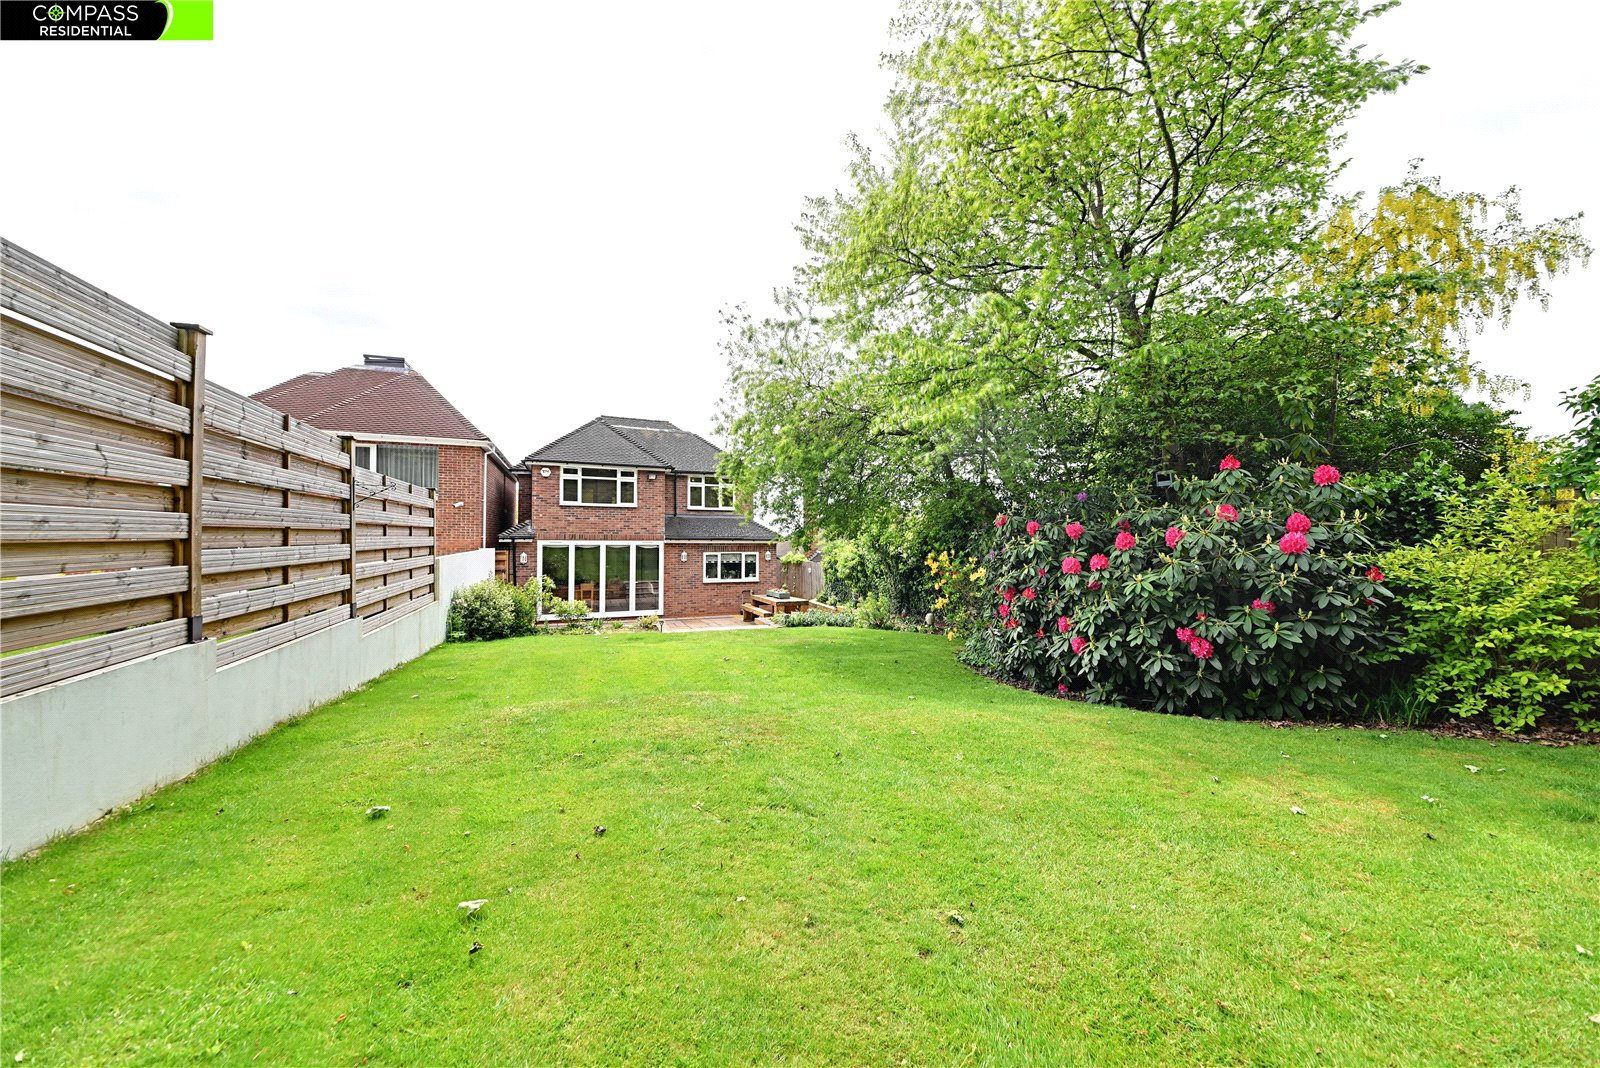 4 bed house for sale in Stanmore, HA7 3AZ 4